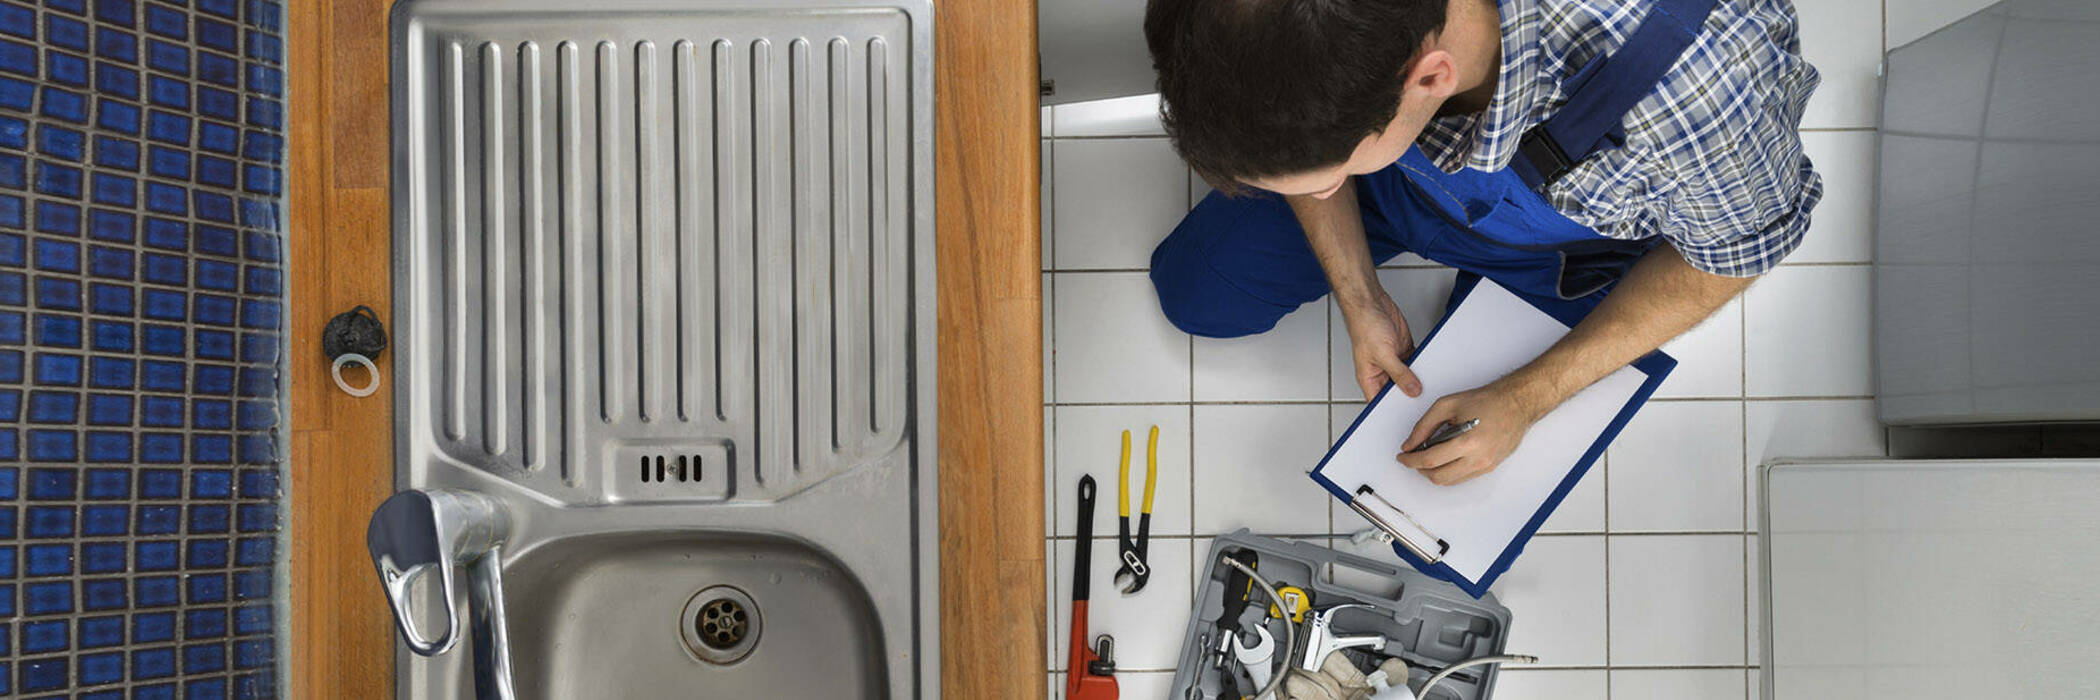 16may appliance reliability hero